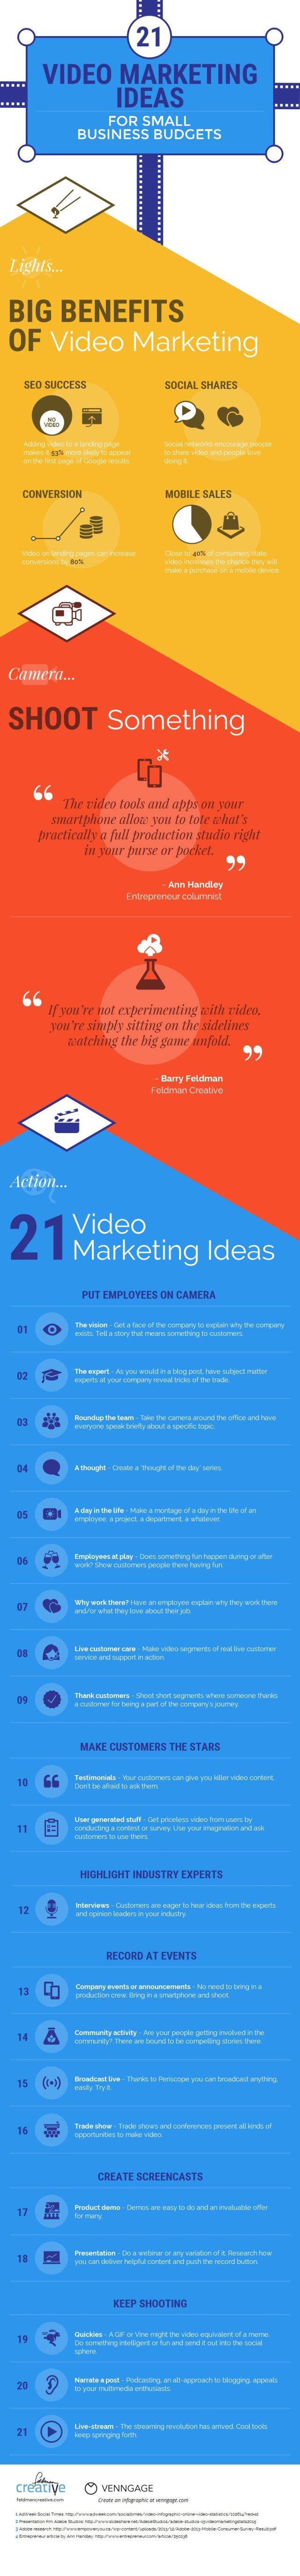 Advertising-Infographics-21-Video-Marketing-Ideas-for-Small-Businesses-on-a-Budget-Infographic Advertising Infographics : 21 Video Marketing Ideas for Small Businesses on a Budget #Infographic